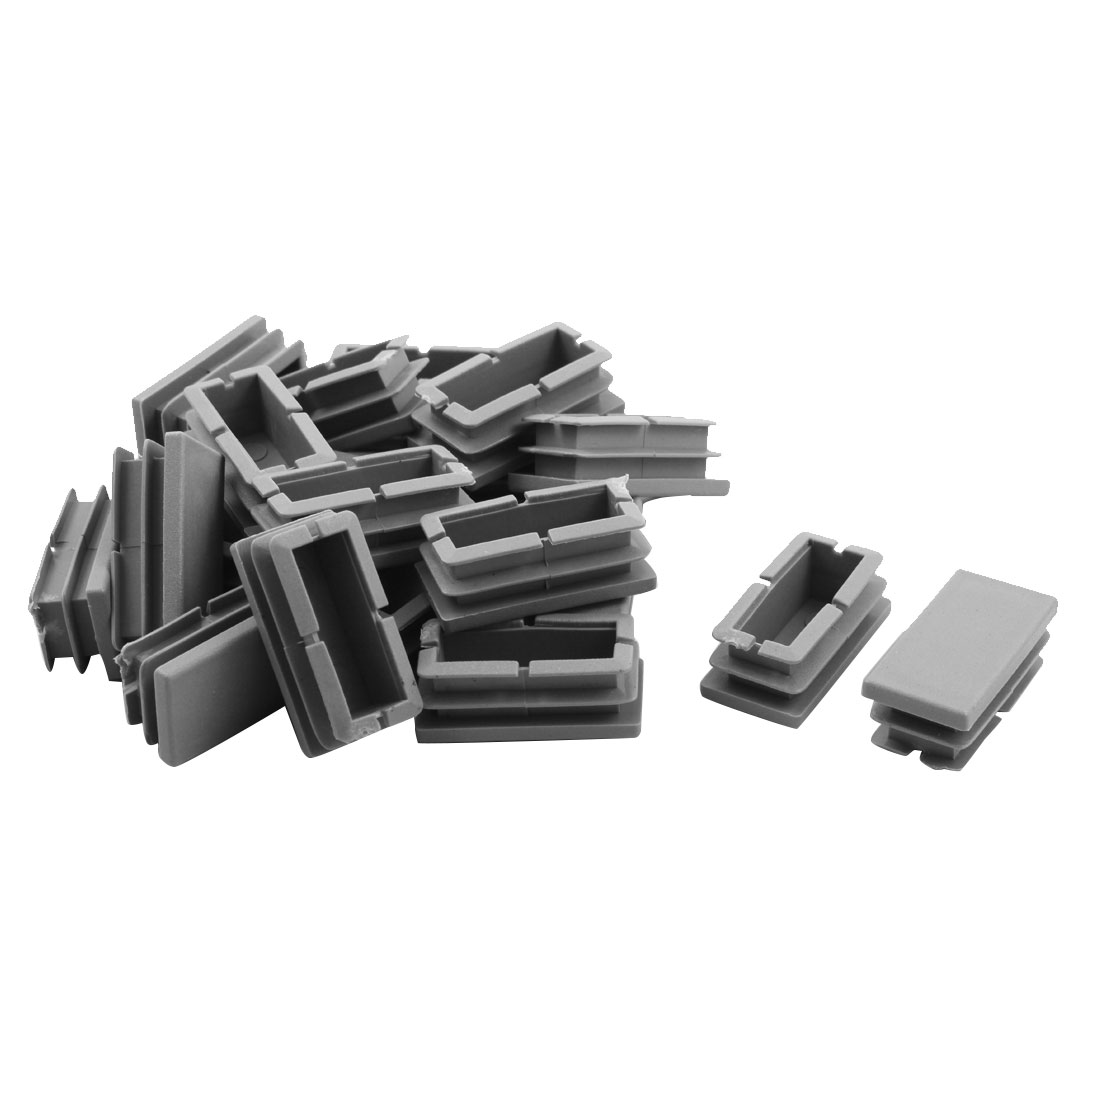 Home Plastic Square Shaped Chair Foot Cover Tube Insert Gray 20 x 40mm 20pcs